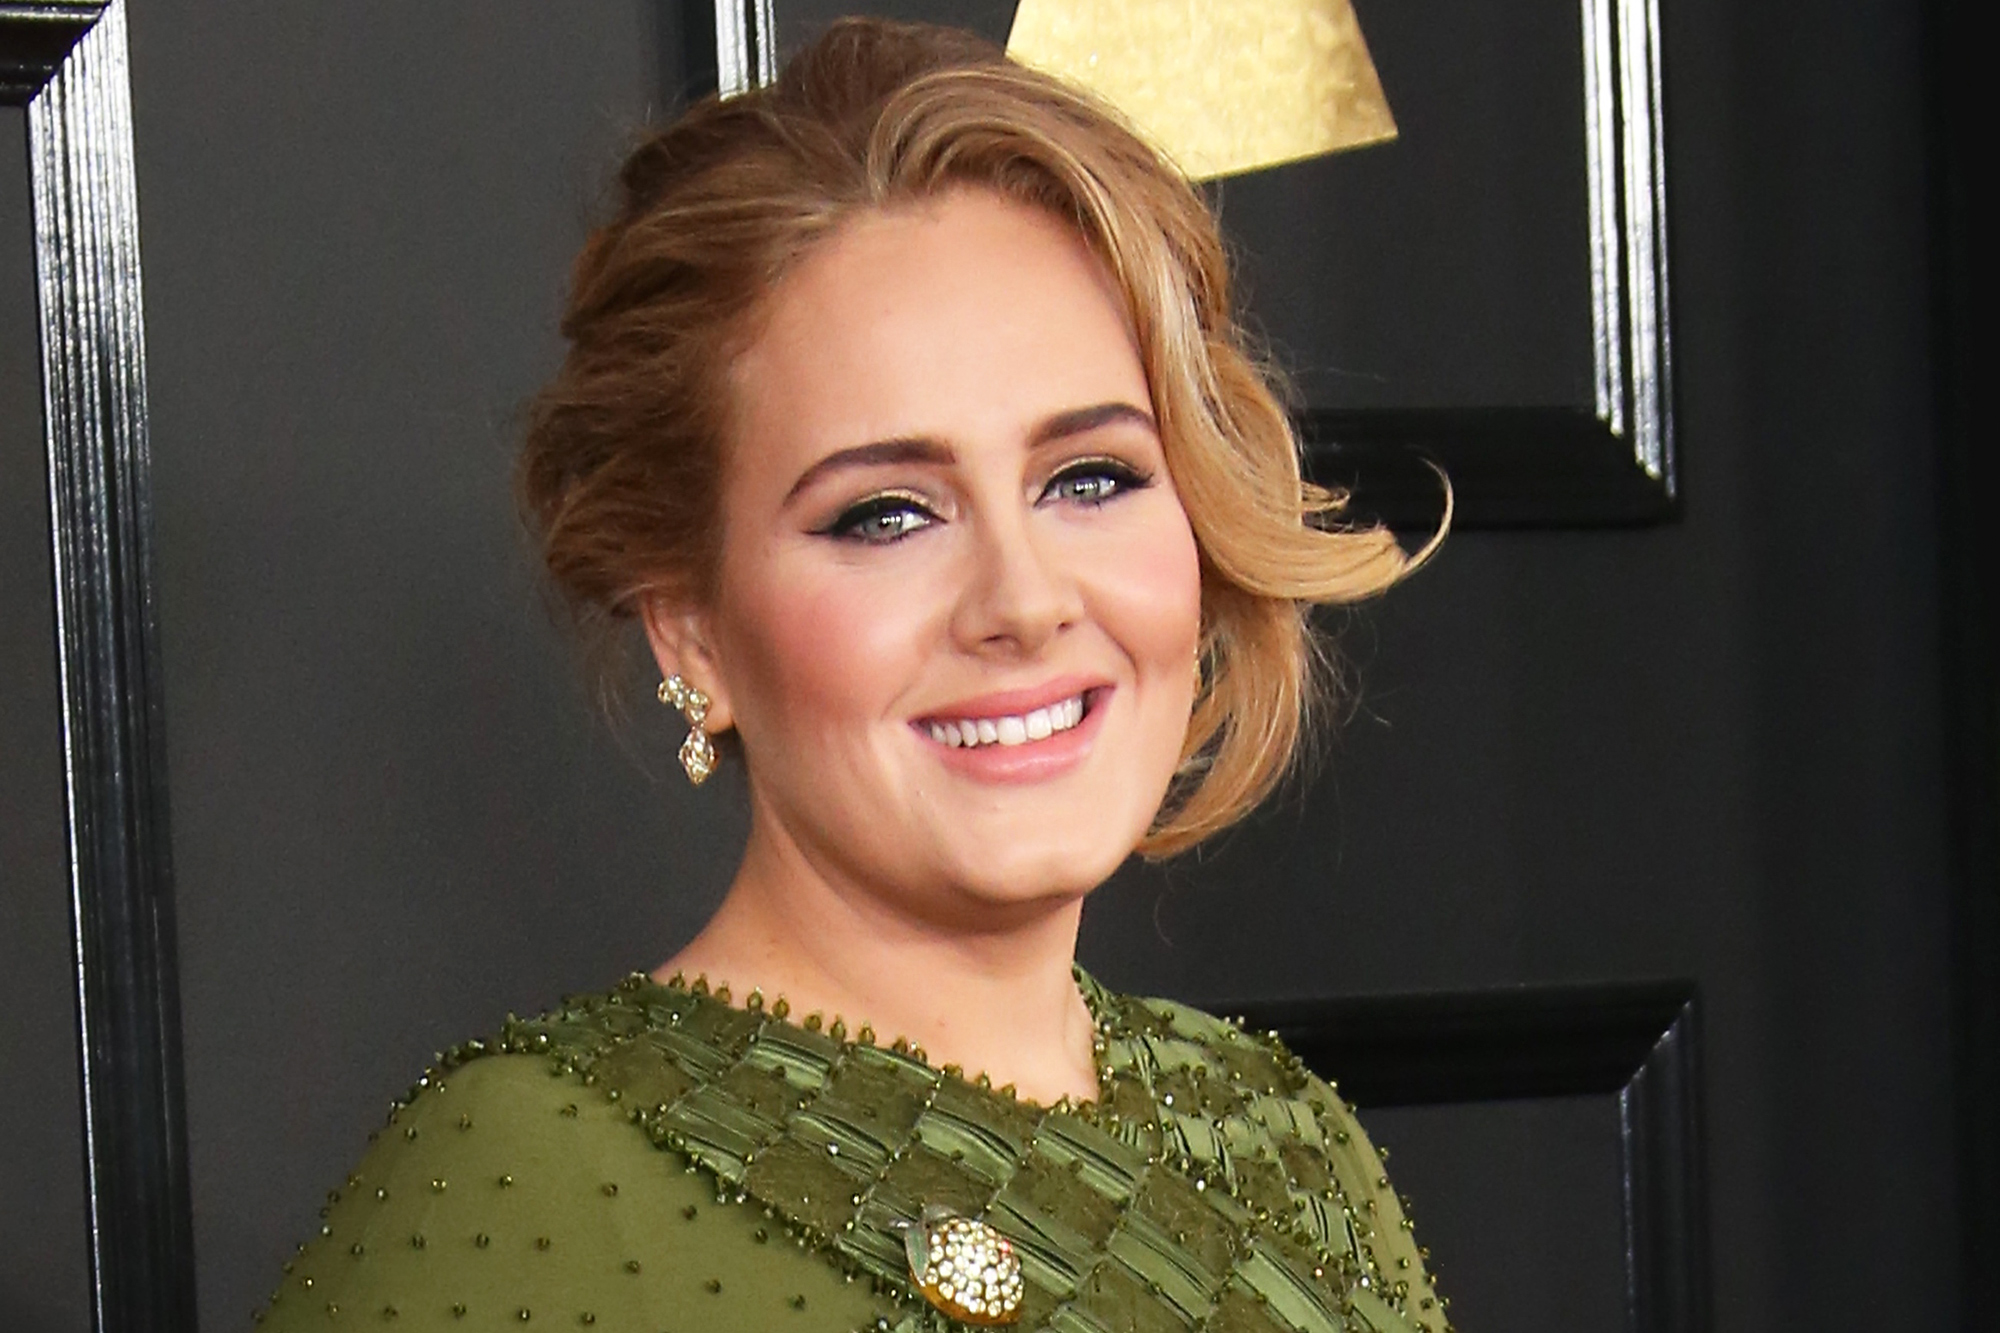 Adele arrives at The 59th GRAMMY Awards at Staples Center on February 12, 2017 in Los Angeles, California.